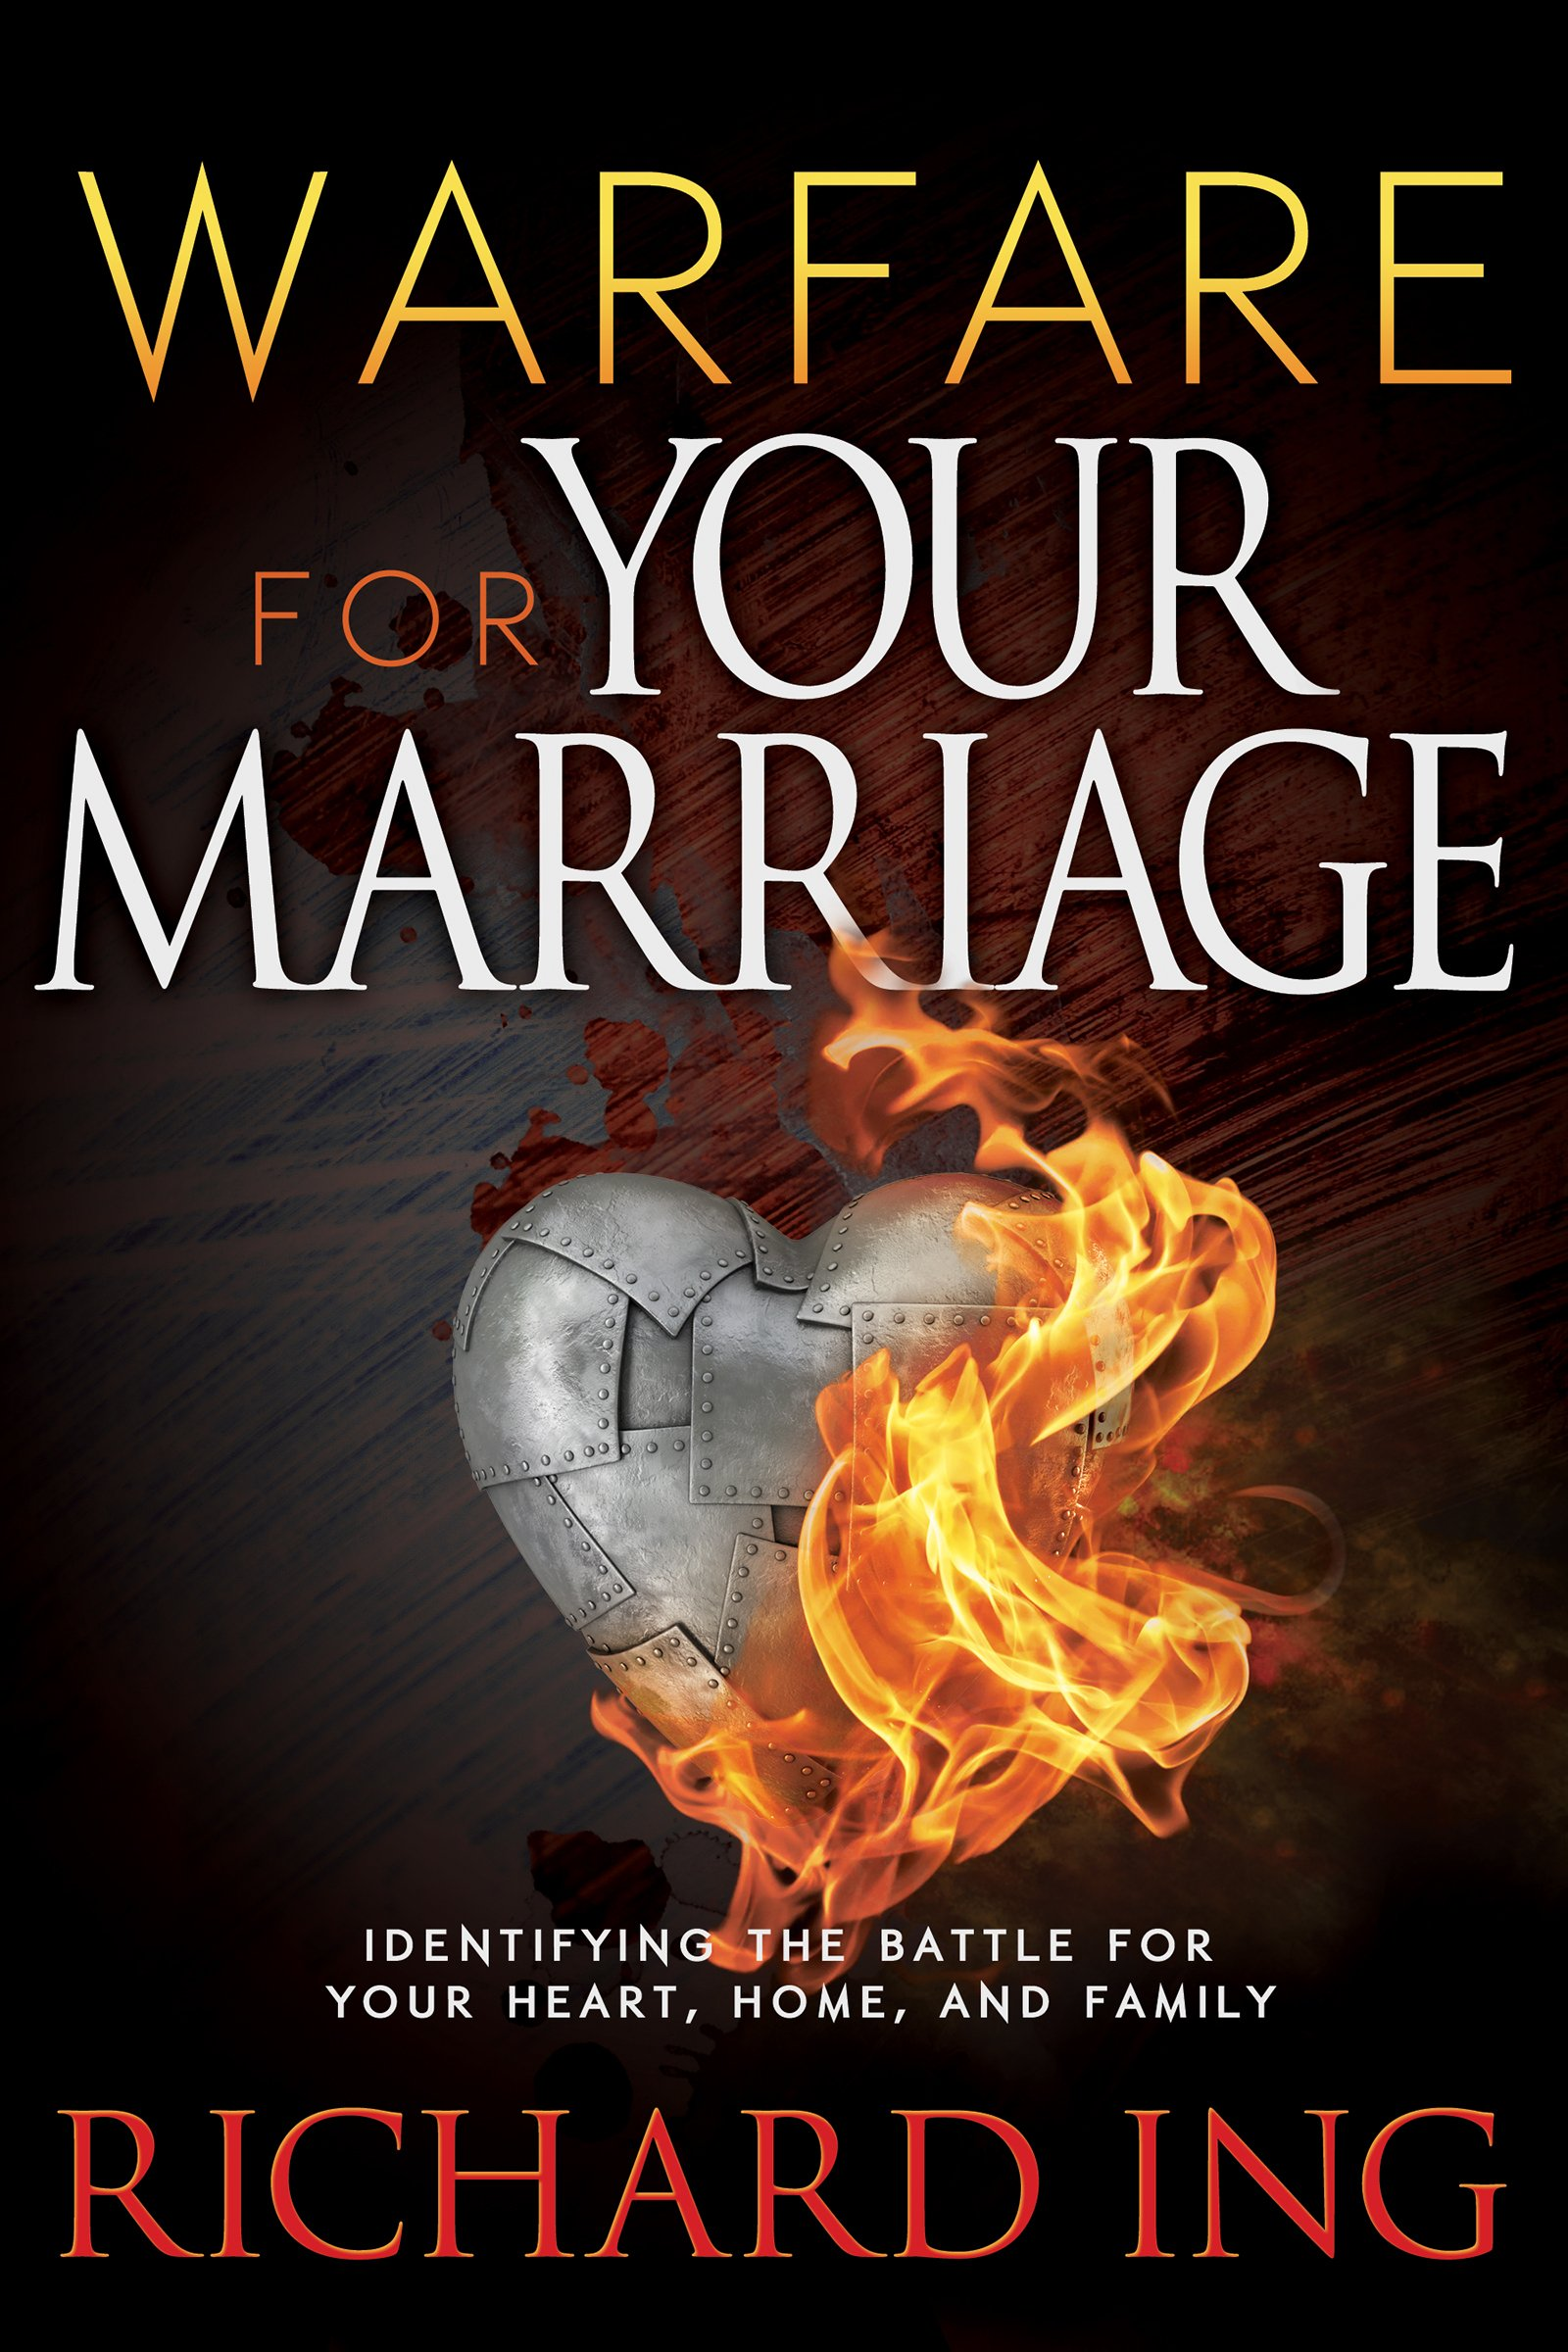 Warfare for Your Marriage: Identifying the Battle for Your